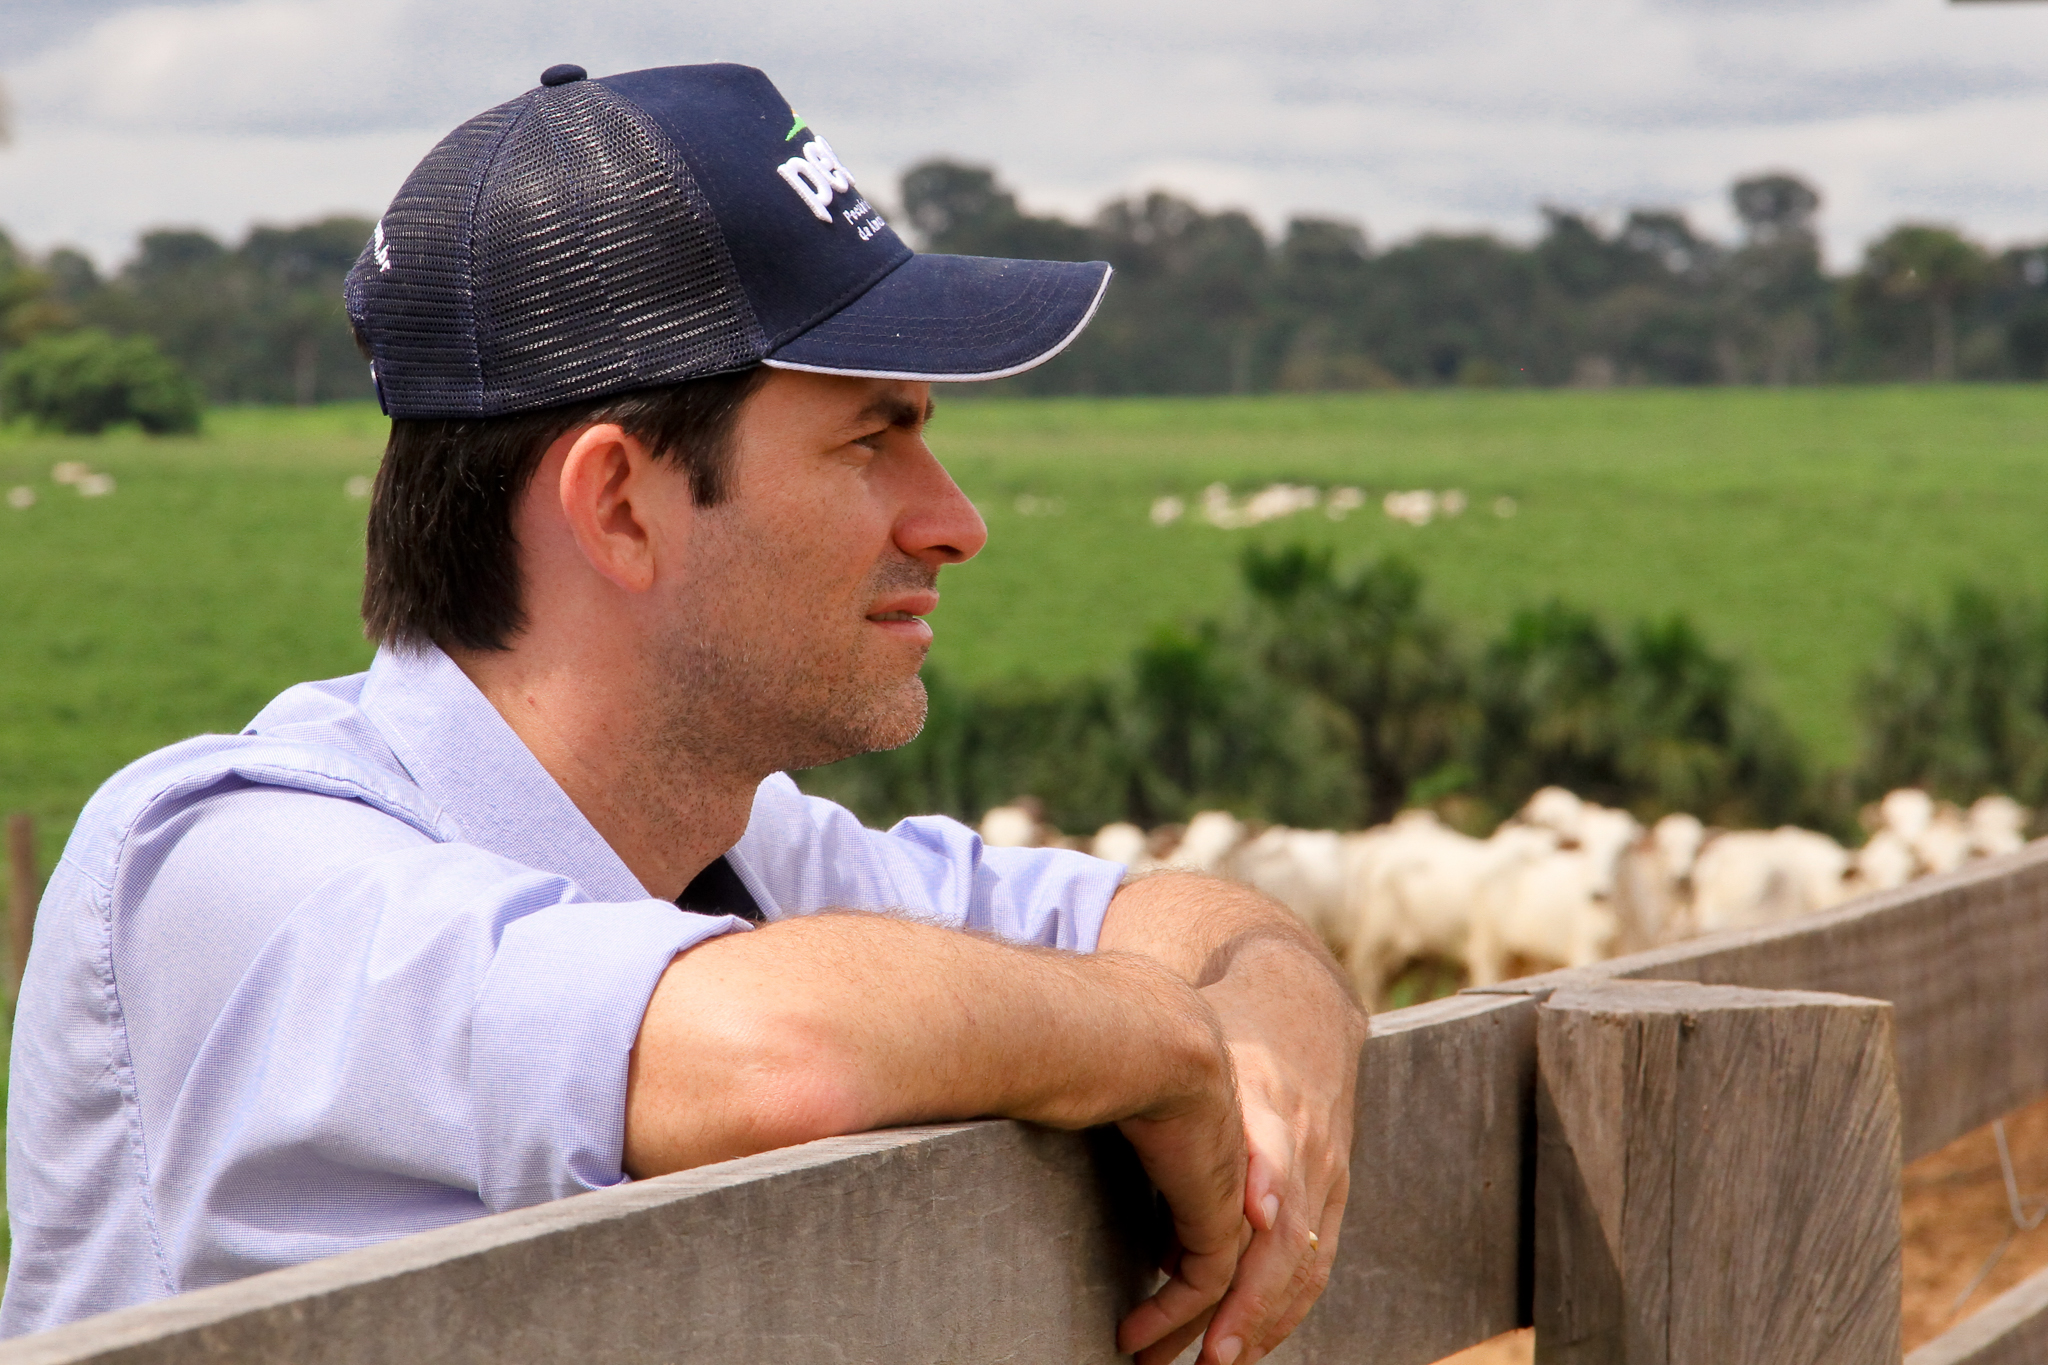 Vando Telles, the CEO and co-founder of Pecsa, visits a ranch in the wet season when pasture grasses are thriving and green. During the wet season, cattle are mostly pasture-fed but still receive supplemental feed to balance their nutrition and reduce methane emissions. Photo courtesy of Pecsa